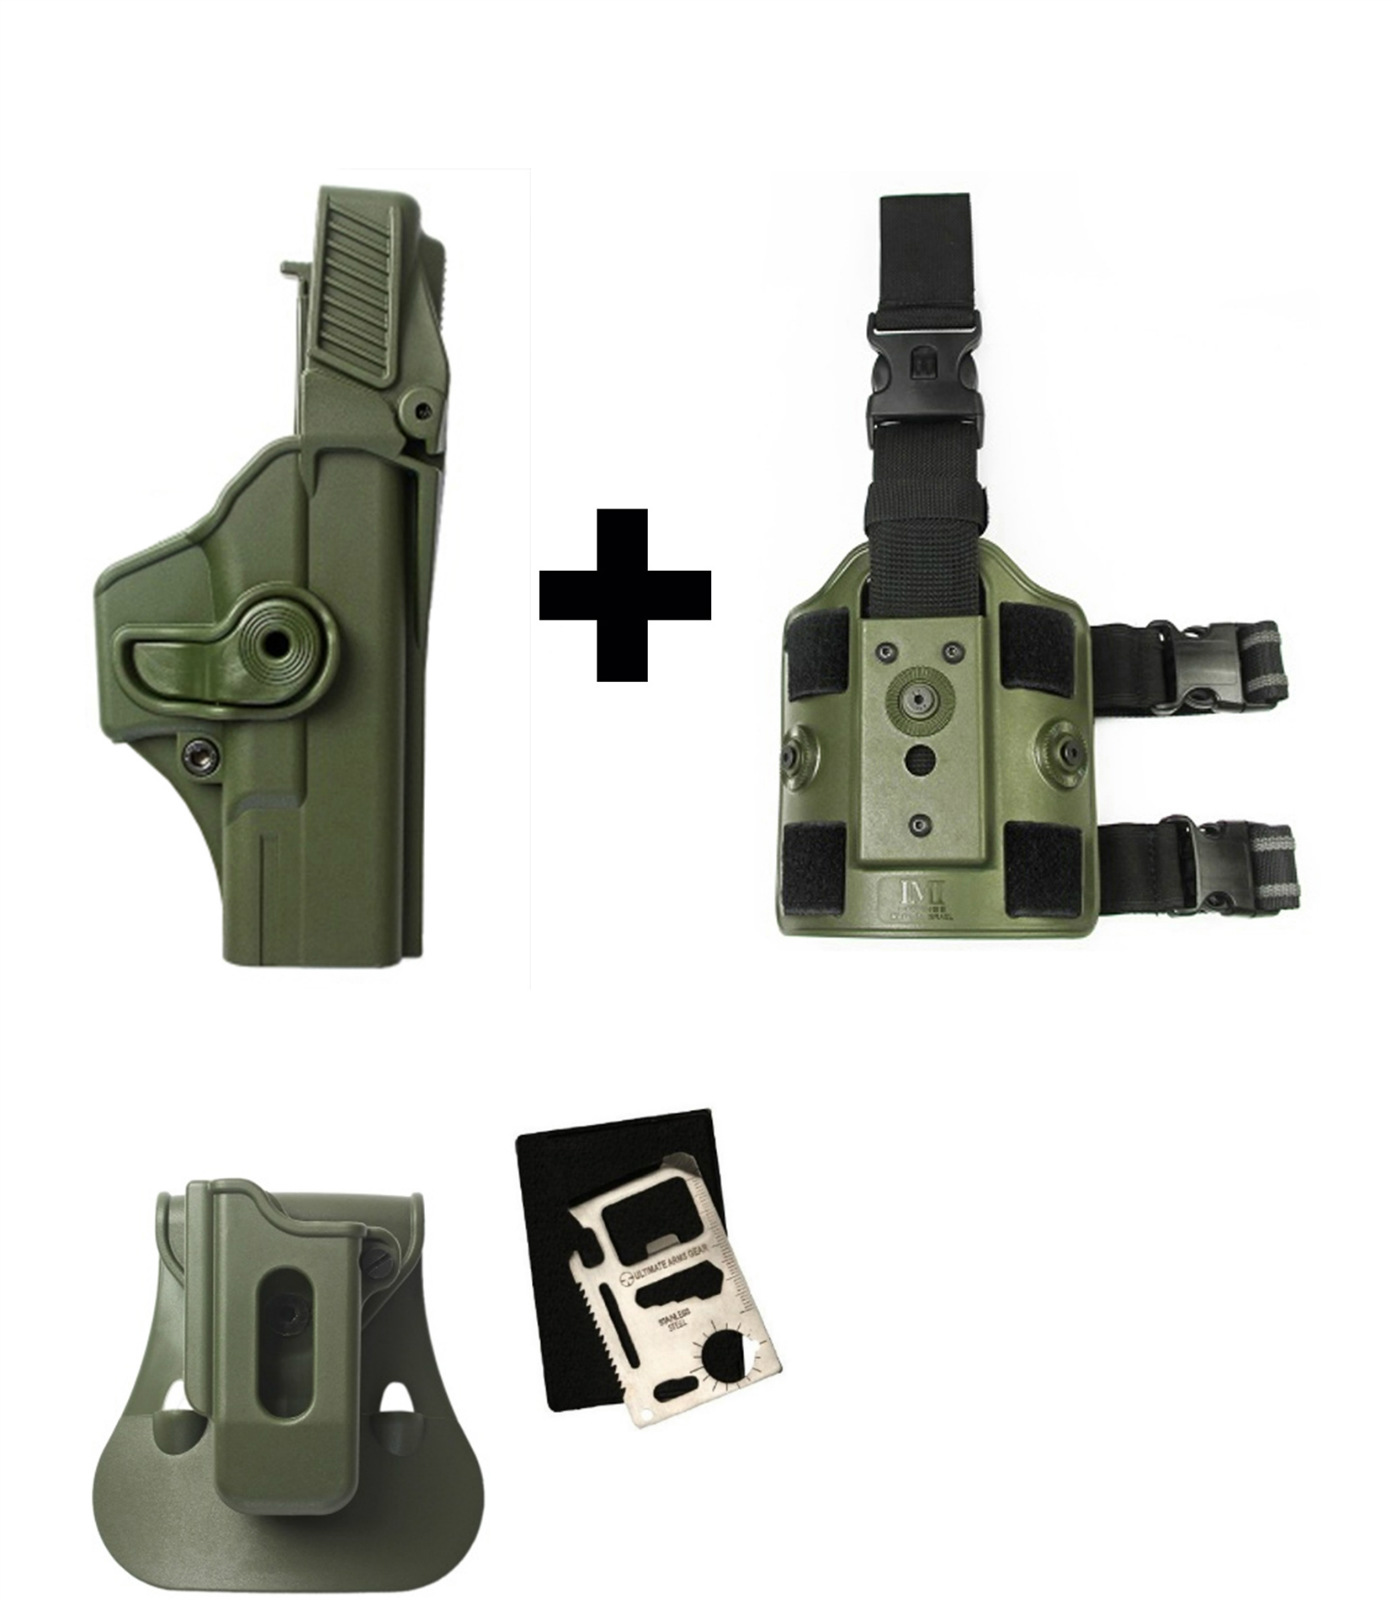 IMI Defense ZSP08 Single Mag Pouch & Paddle + Z1400 Level 3 360� Rotate Holster Glock 19 23 25 32 Gen 4, OD Green +... by